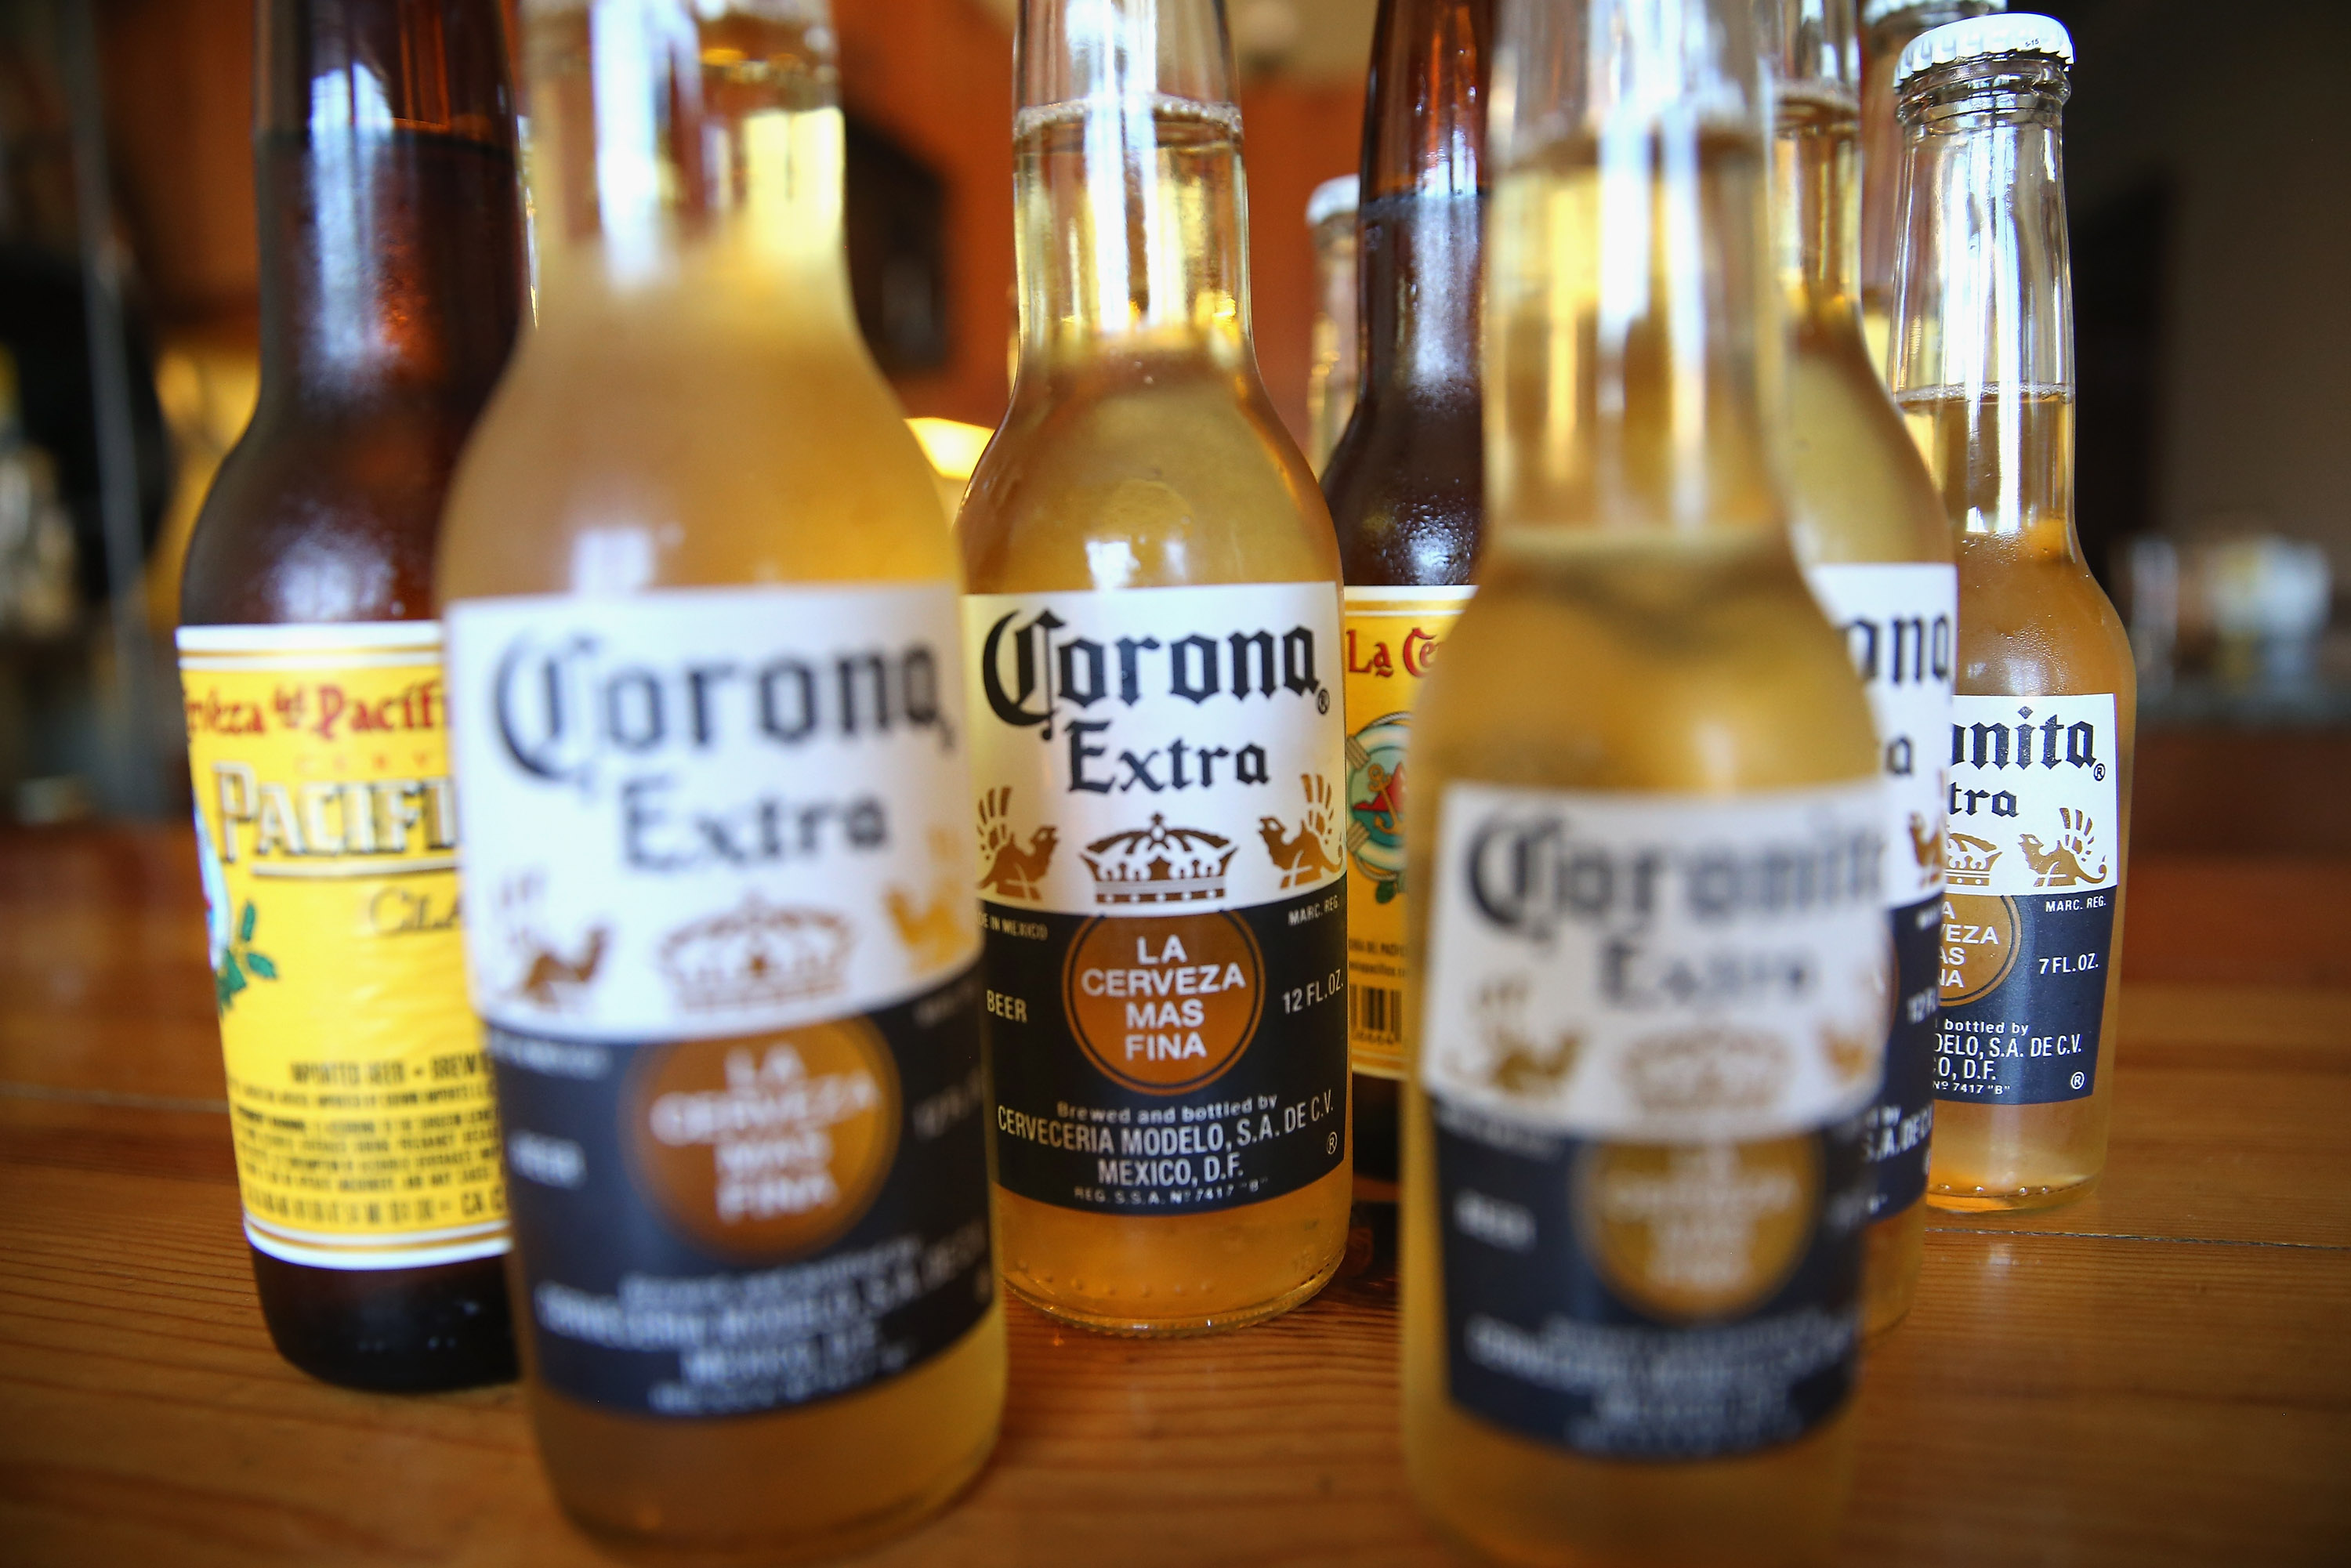 Corona and Pacifico beer.